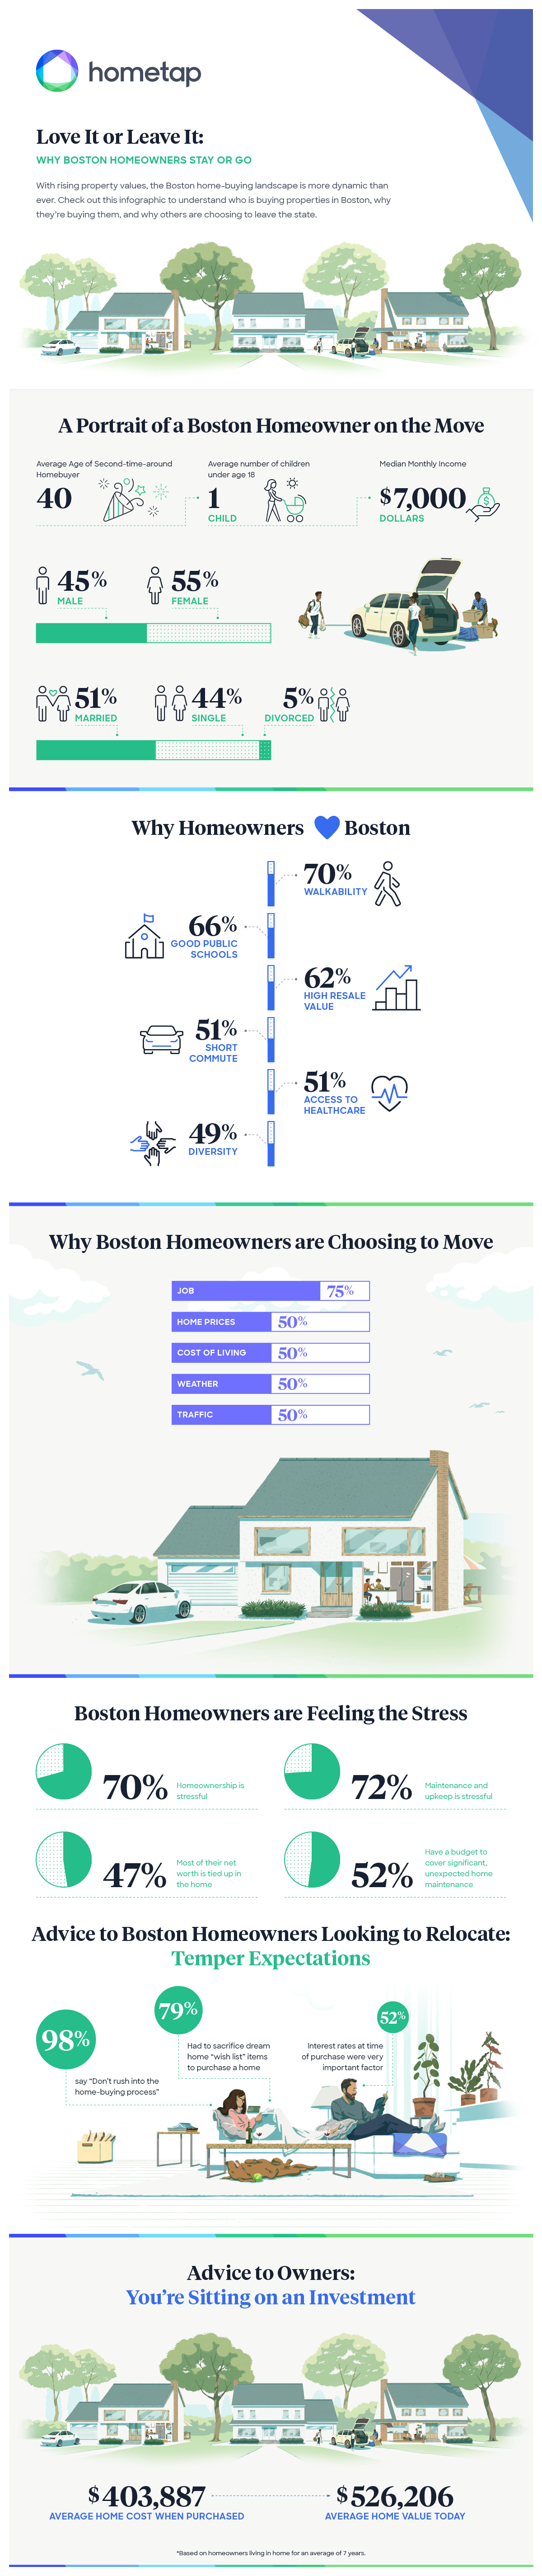 Boston homebuying landscape